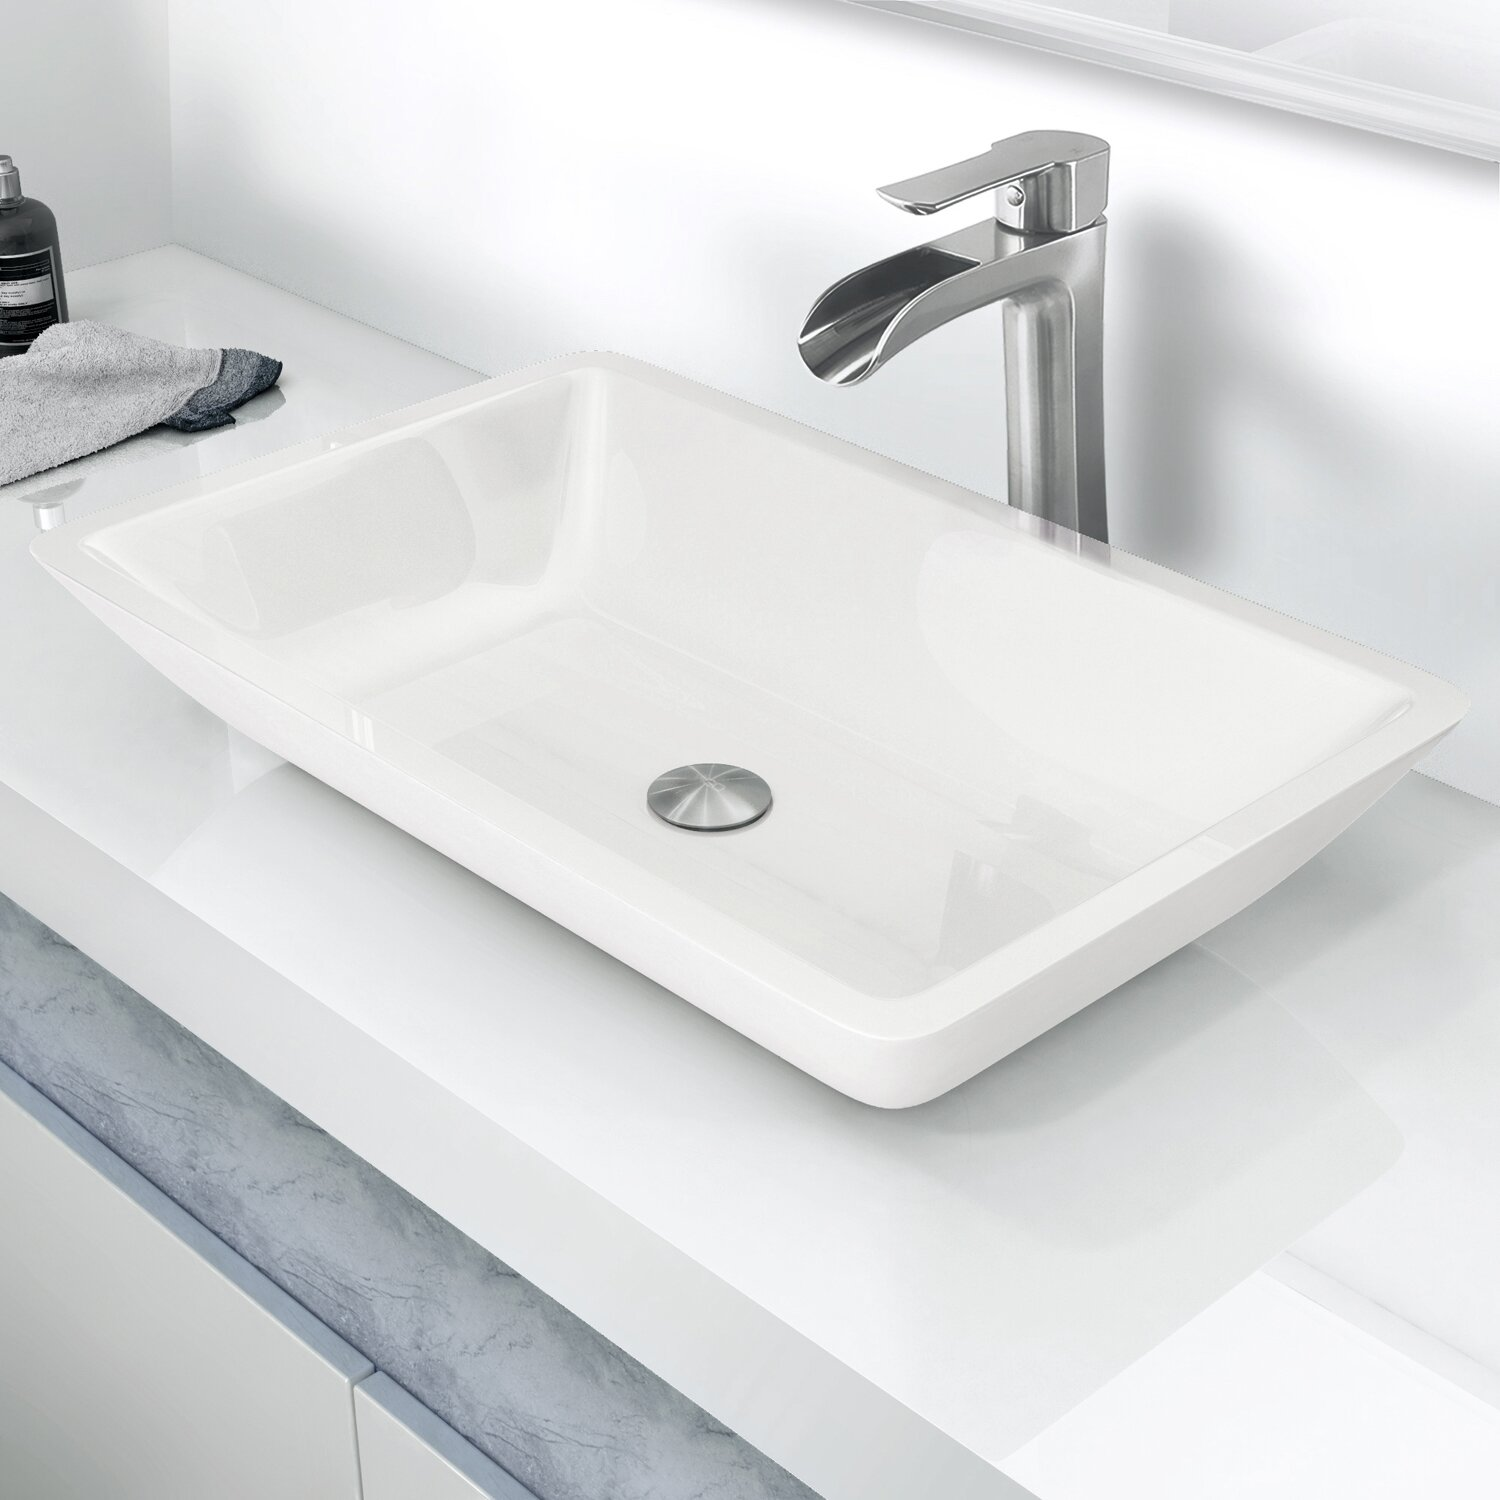 Rectangular Bathroom Sinks Vigo Flat Edged Phoenix Stone Rectangular Vessel Bathroom Sink